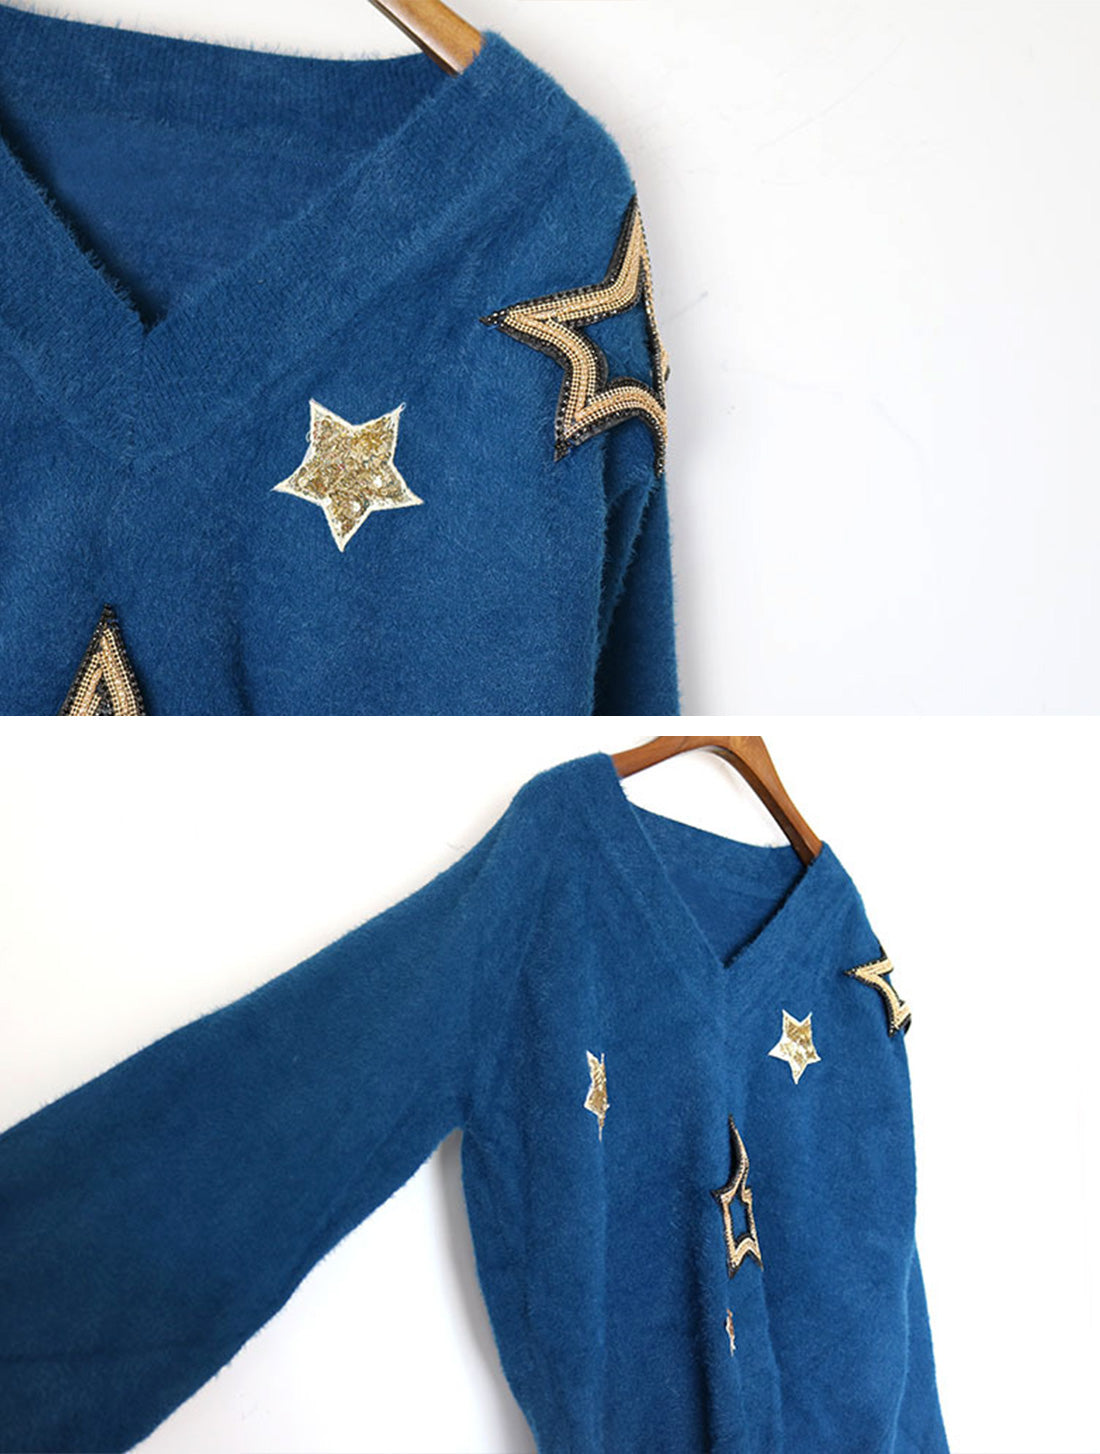 Obviously Edgy Star Embroidered Sweater Top Details 2